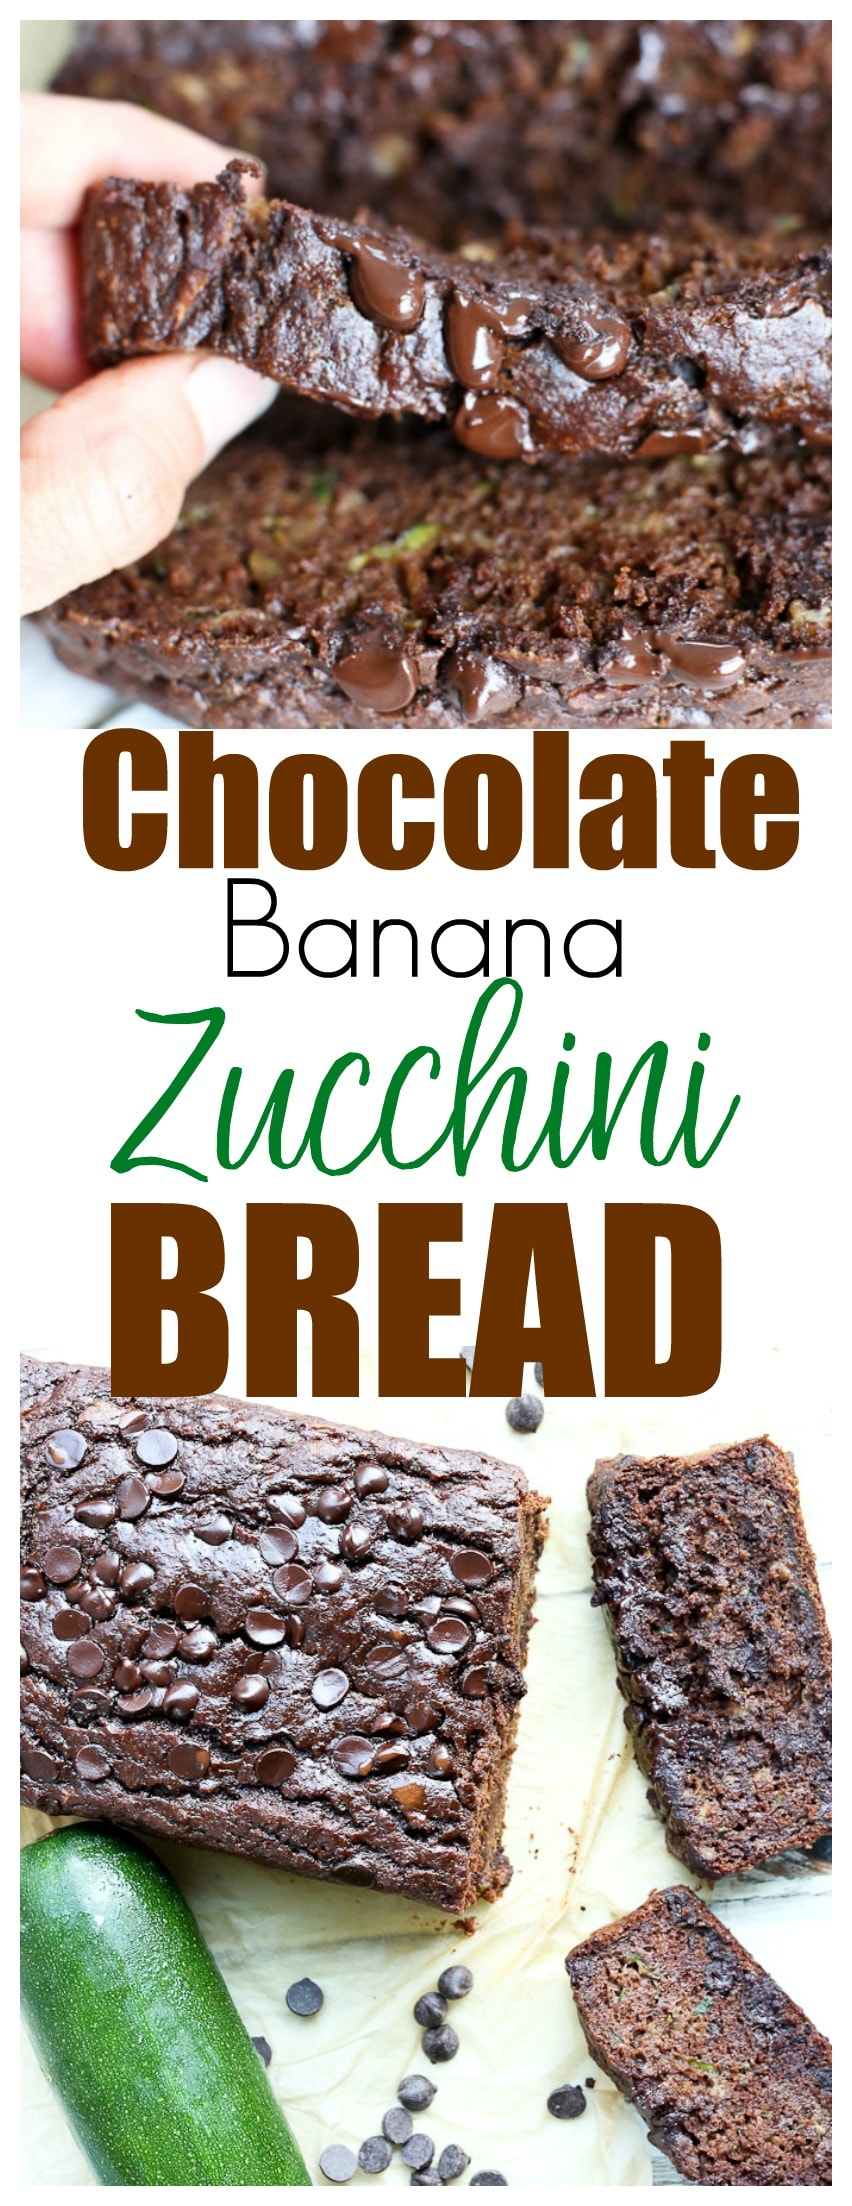 Chocolate Banana Zucchini Bread recipe | quick bread recipe | healthy recipe | healthy dessert | whole grains | Greek Yogurt |